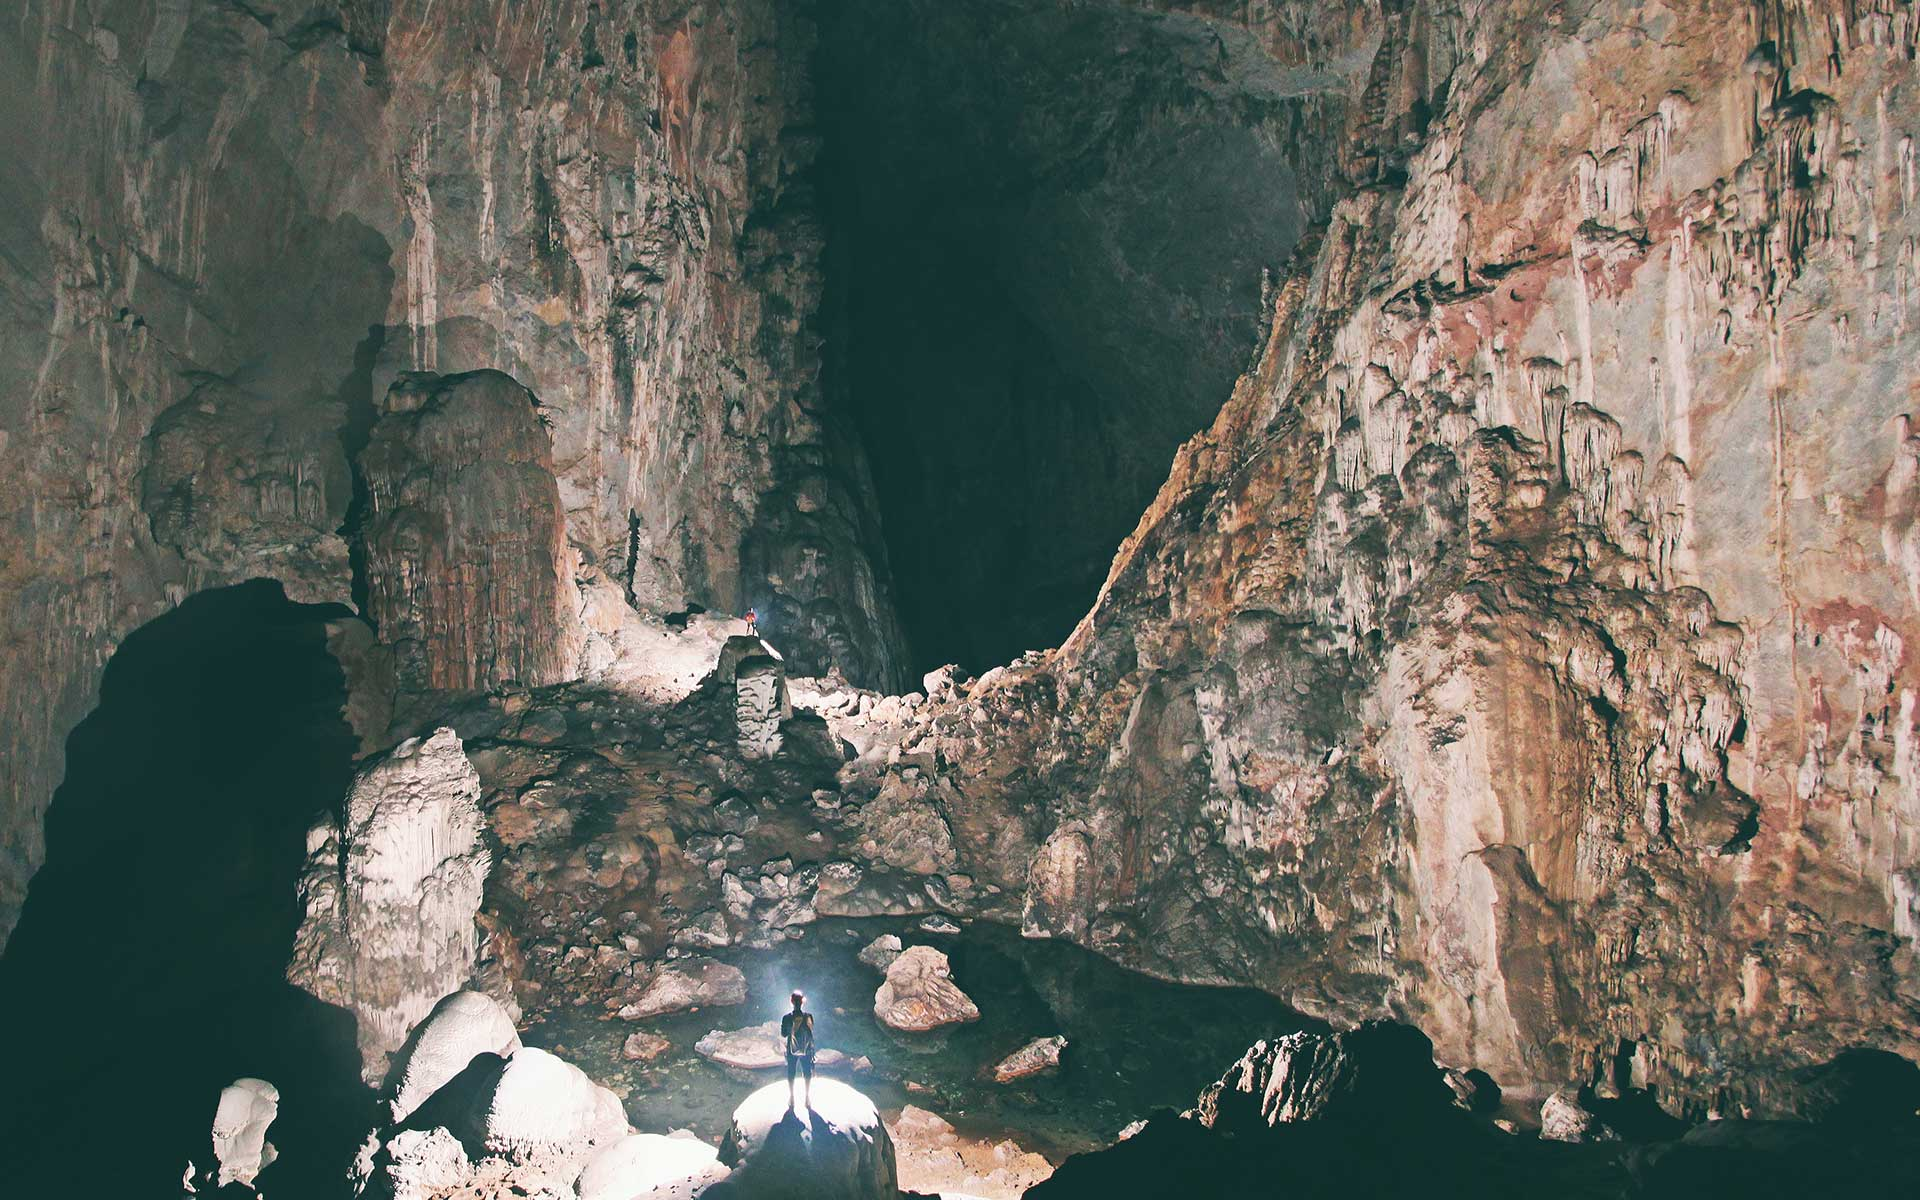 Overwhelmed feeling while inside Son Doong cave